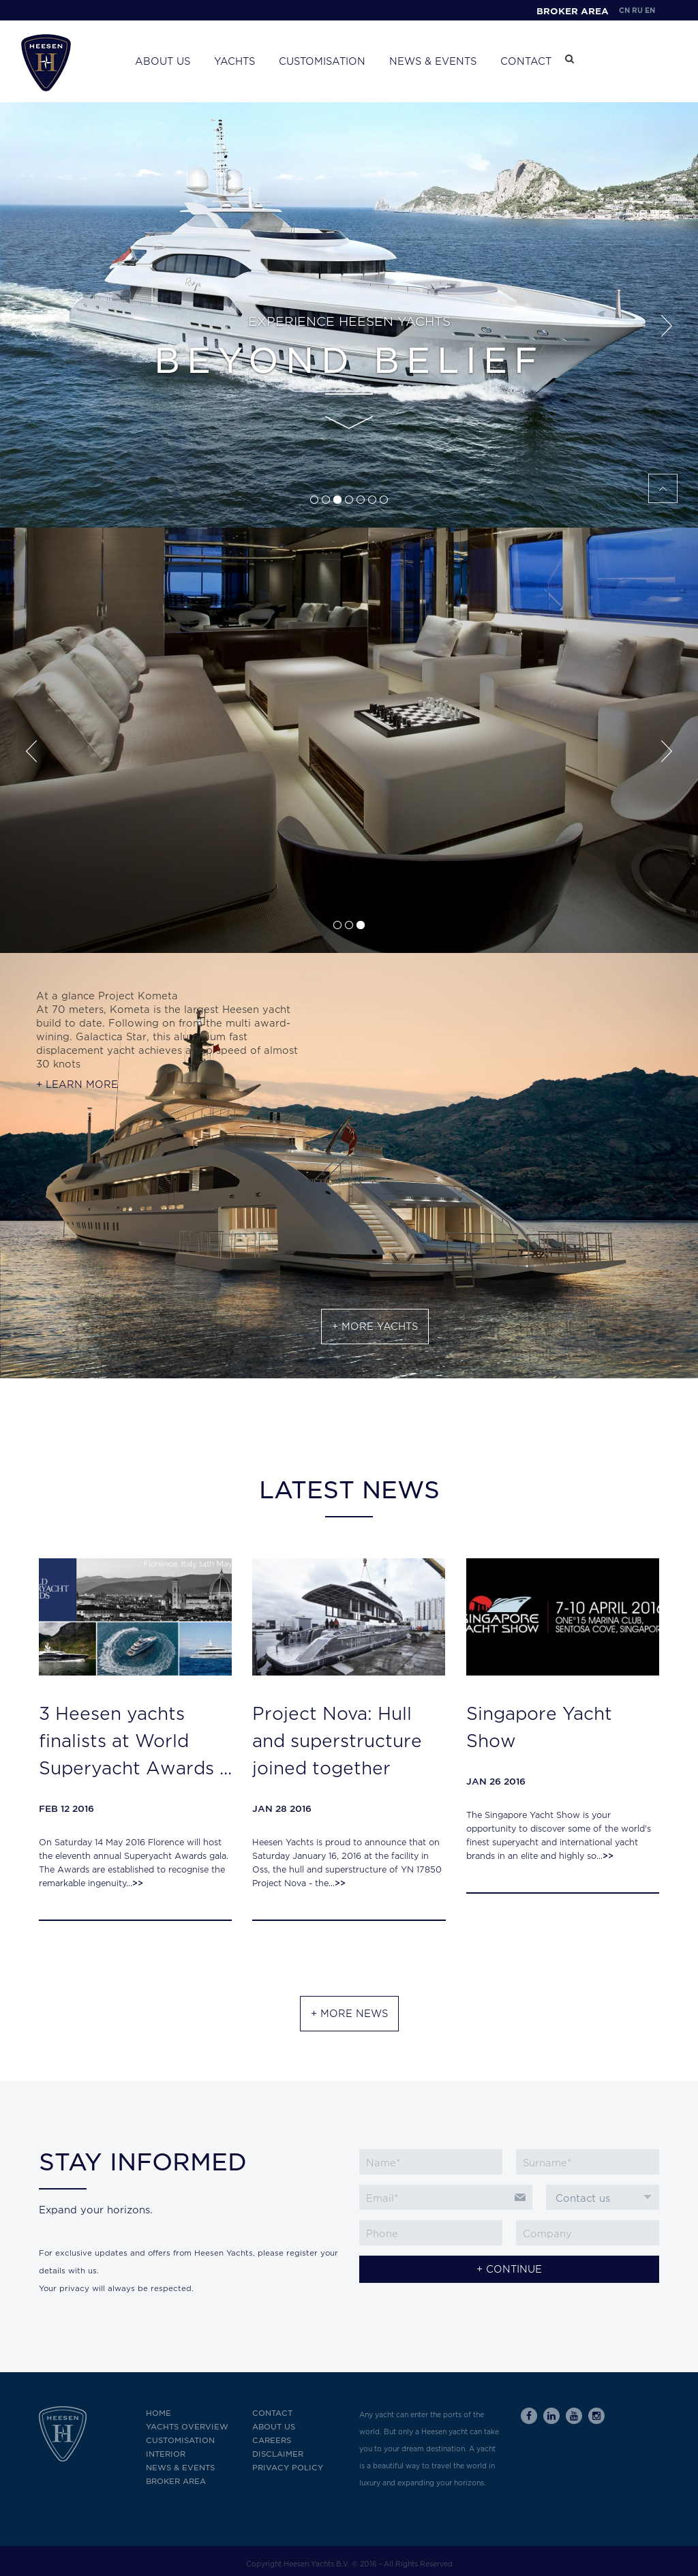 Heesen Yachts Competitors, Revenue and Employees - Owler